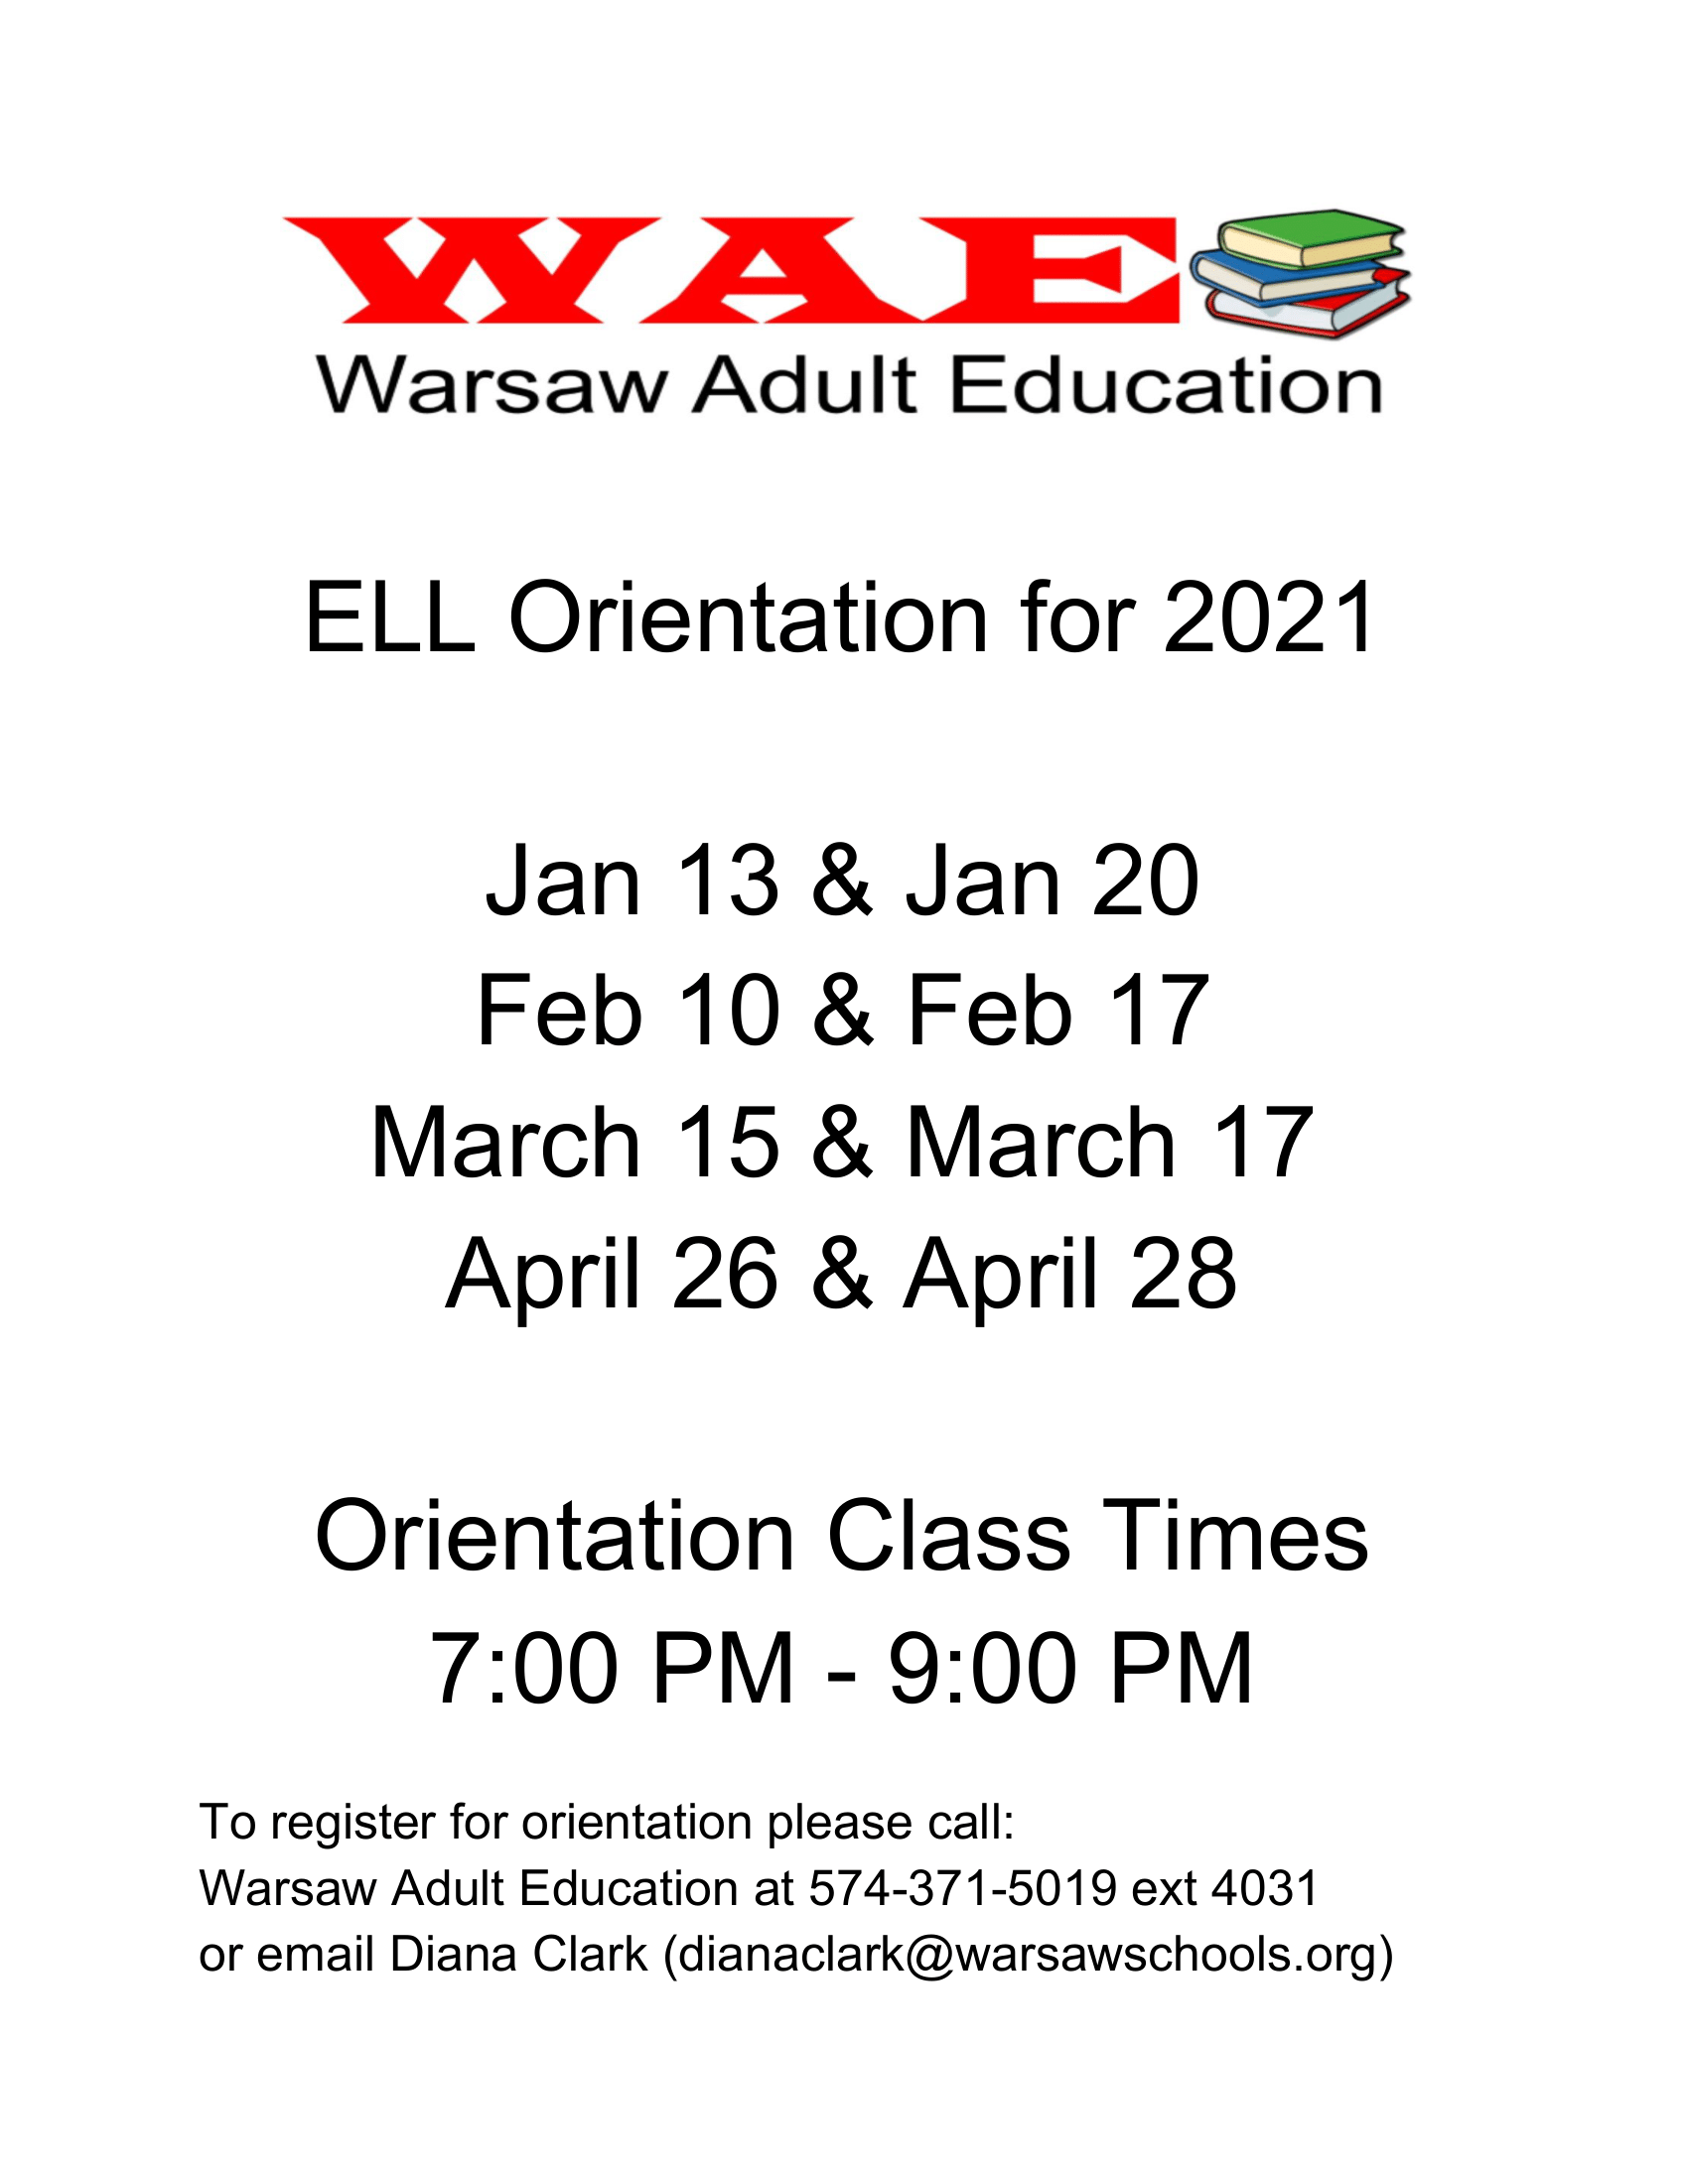 Warsaw Adult Education ELL Orientation for 2021